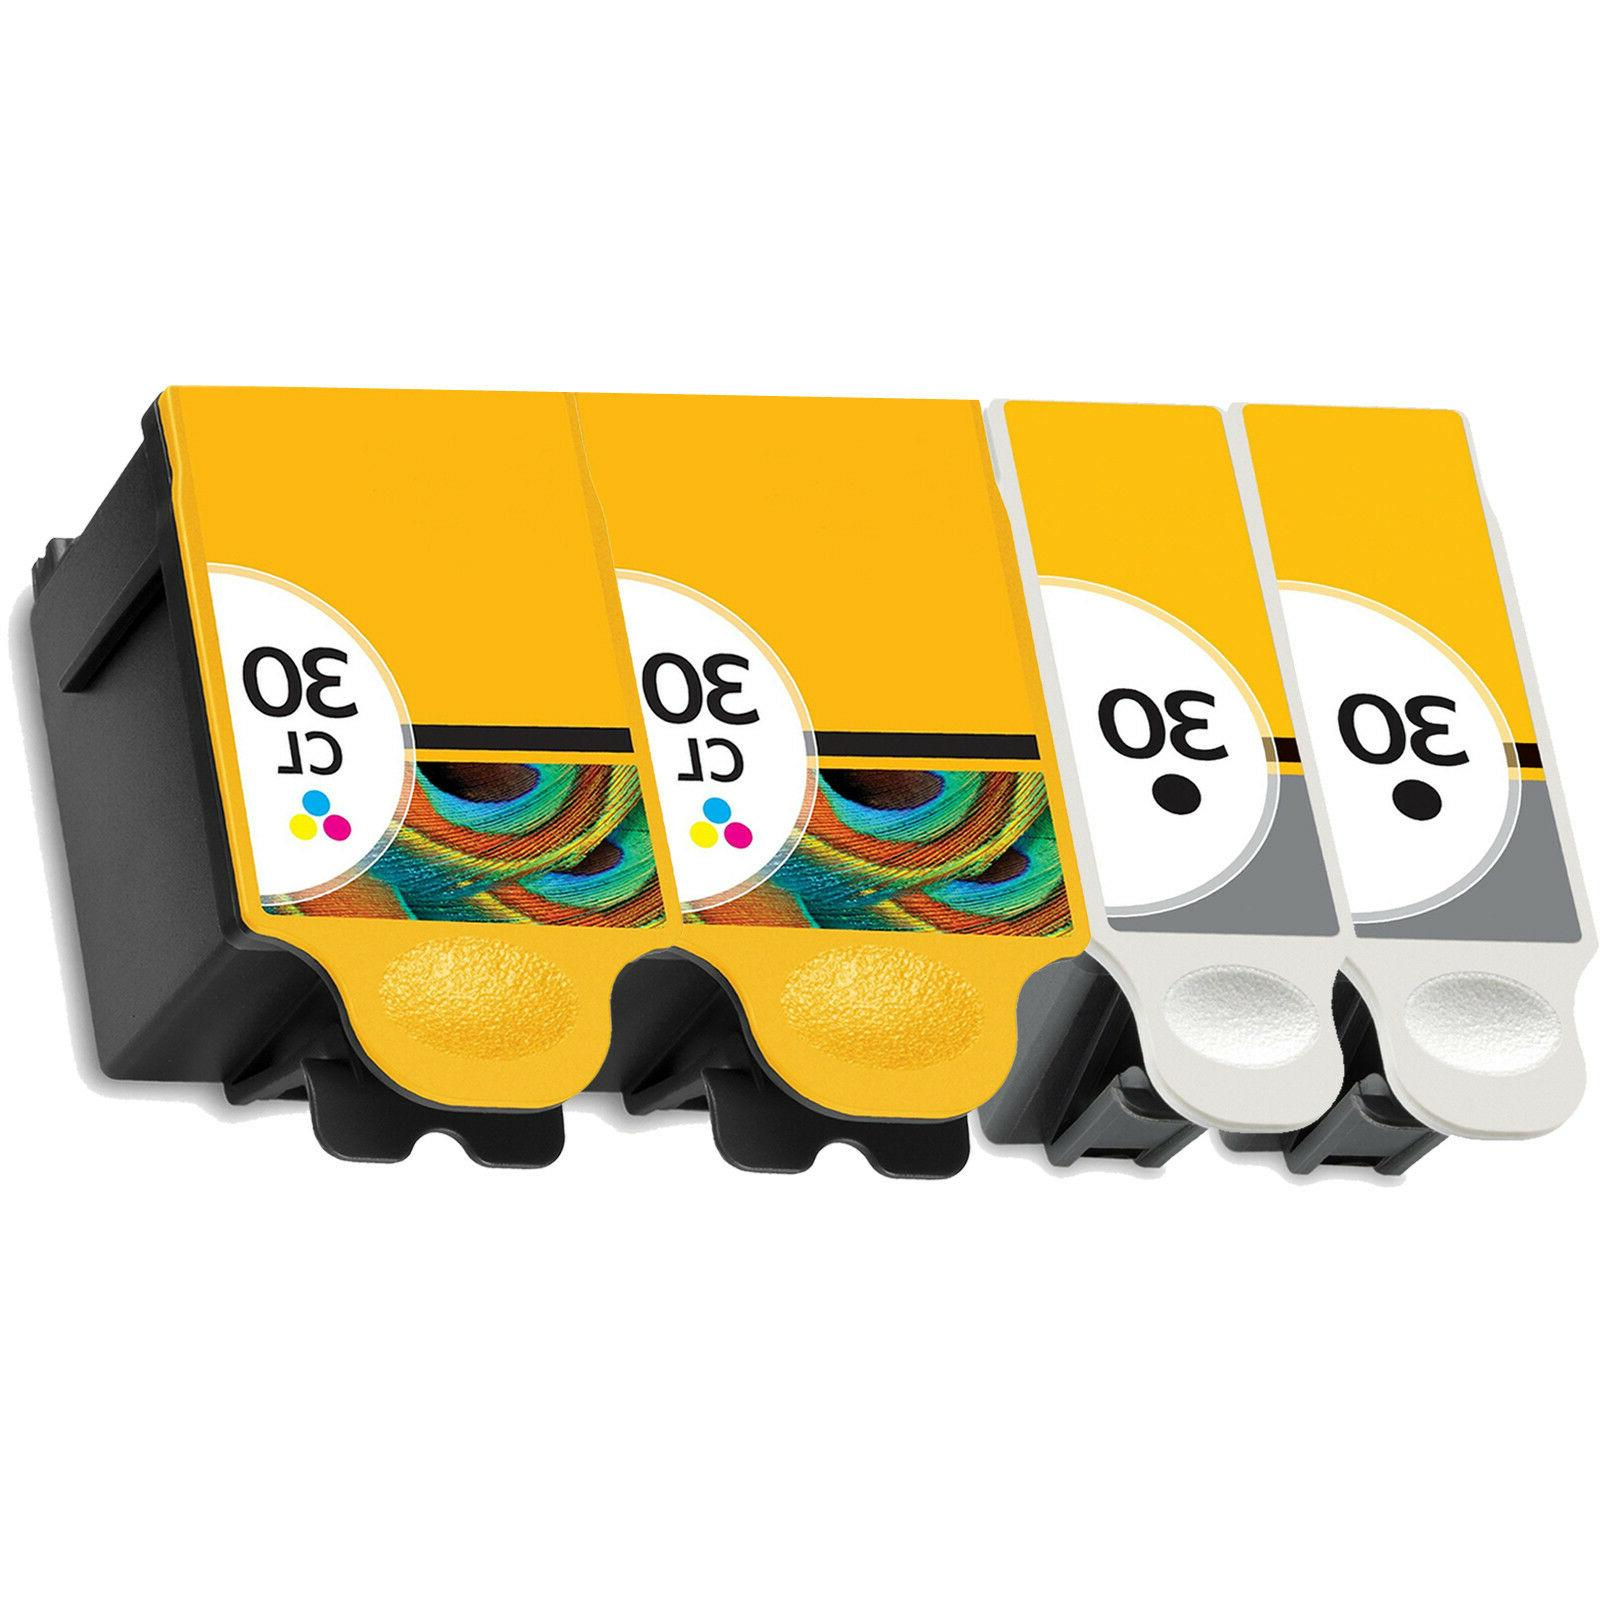 4 Pack For 30XL Cartridges Set 2170 5.1